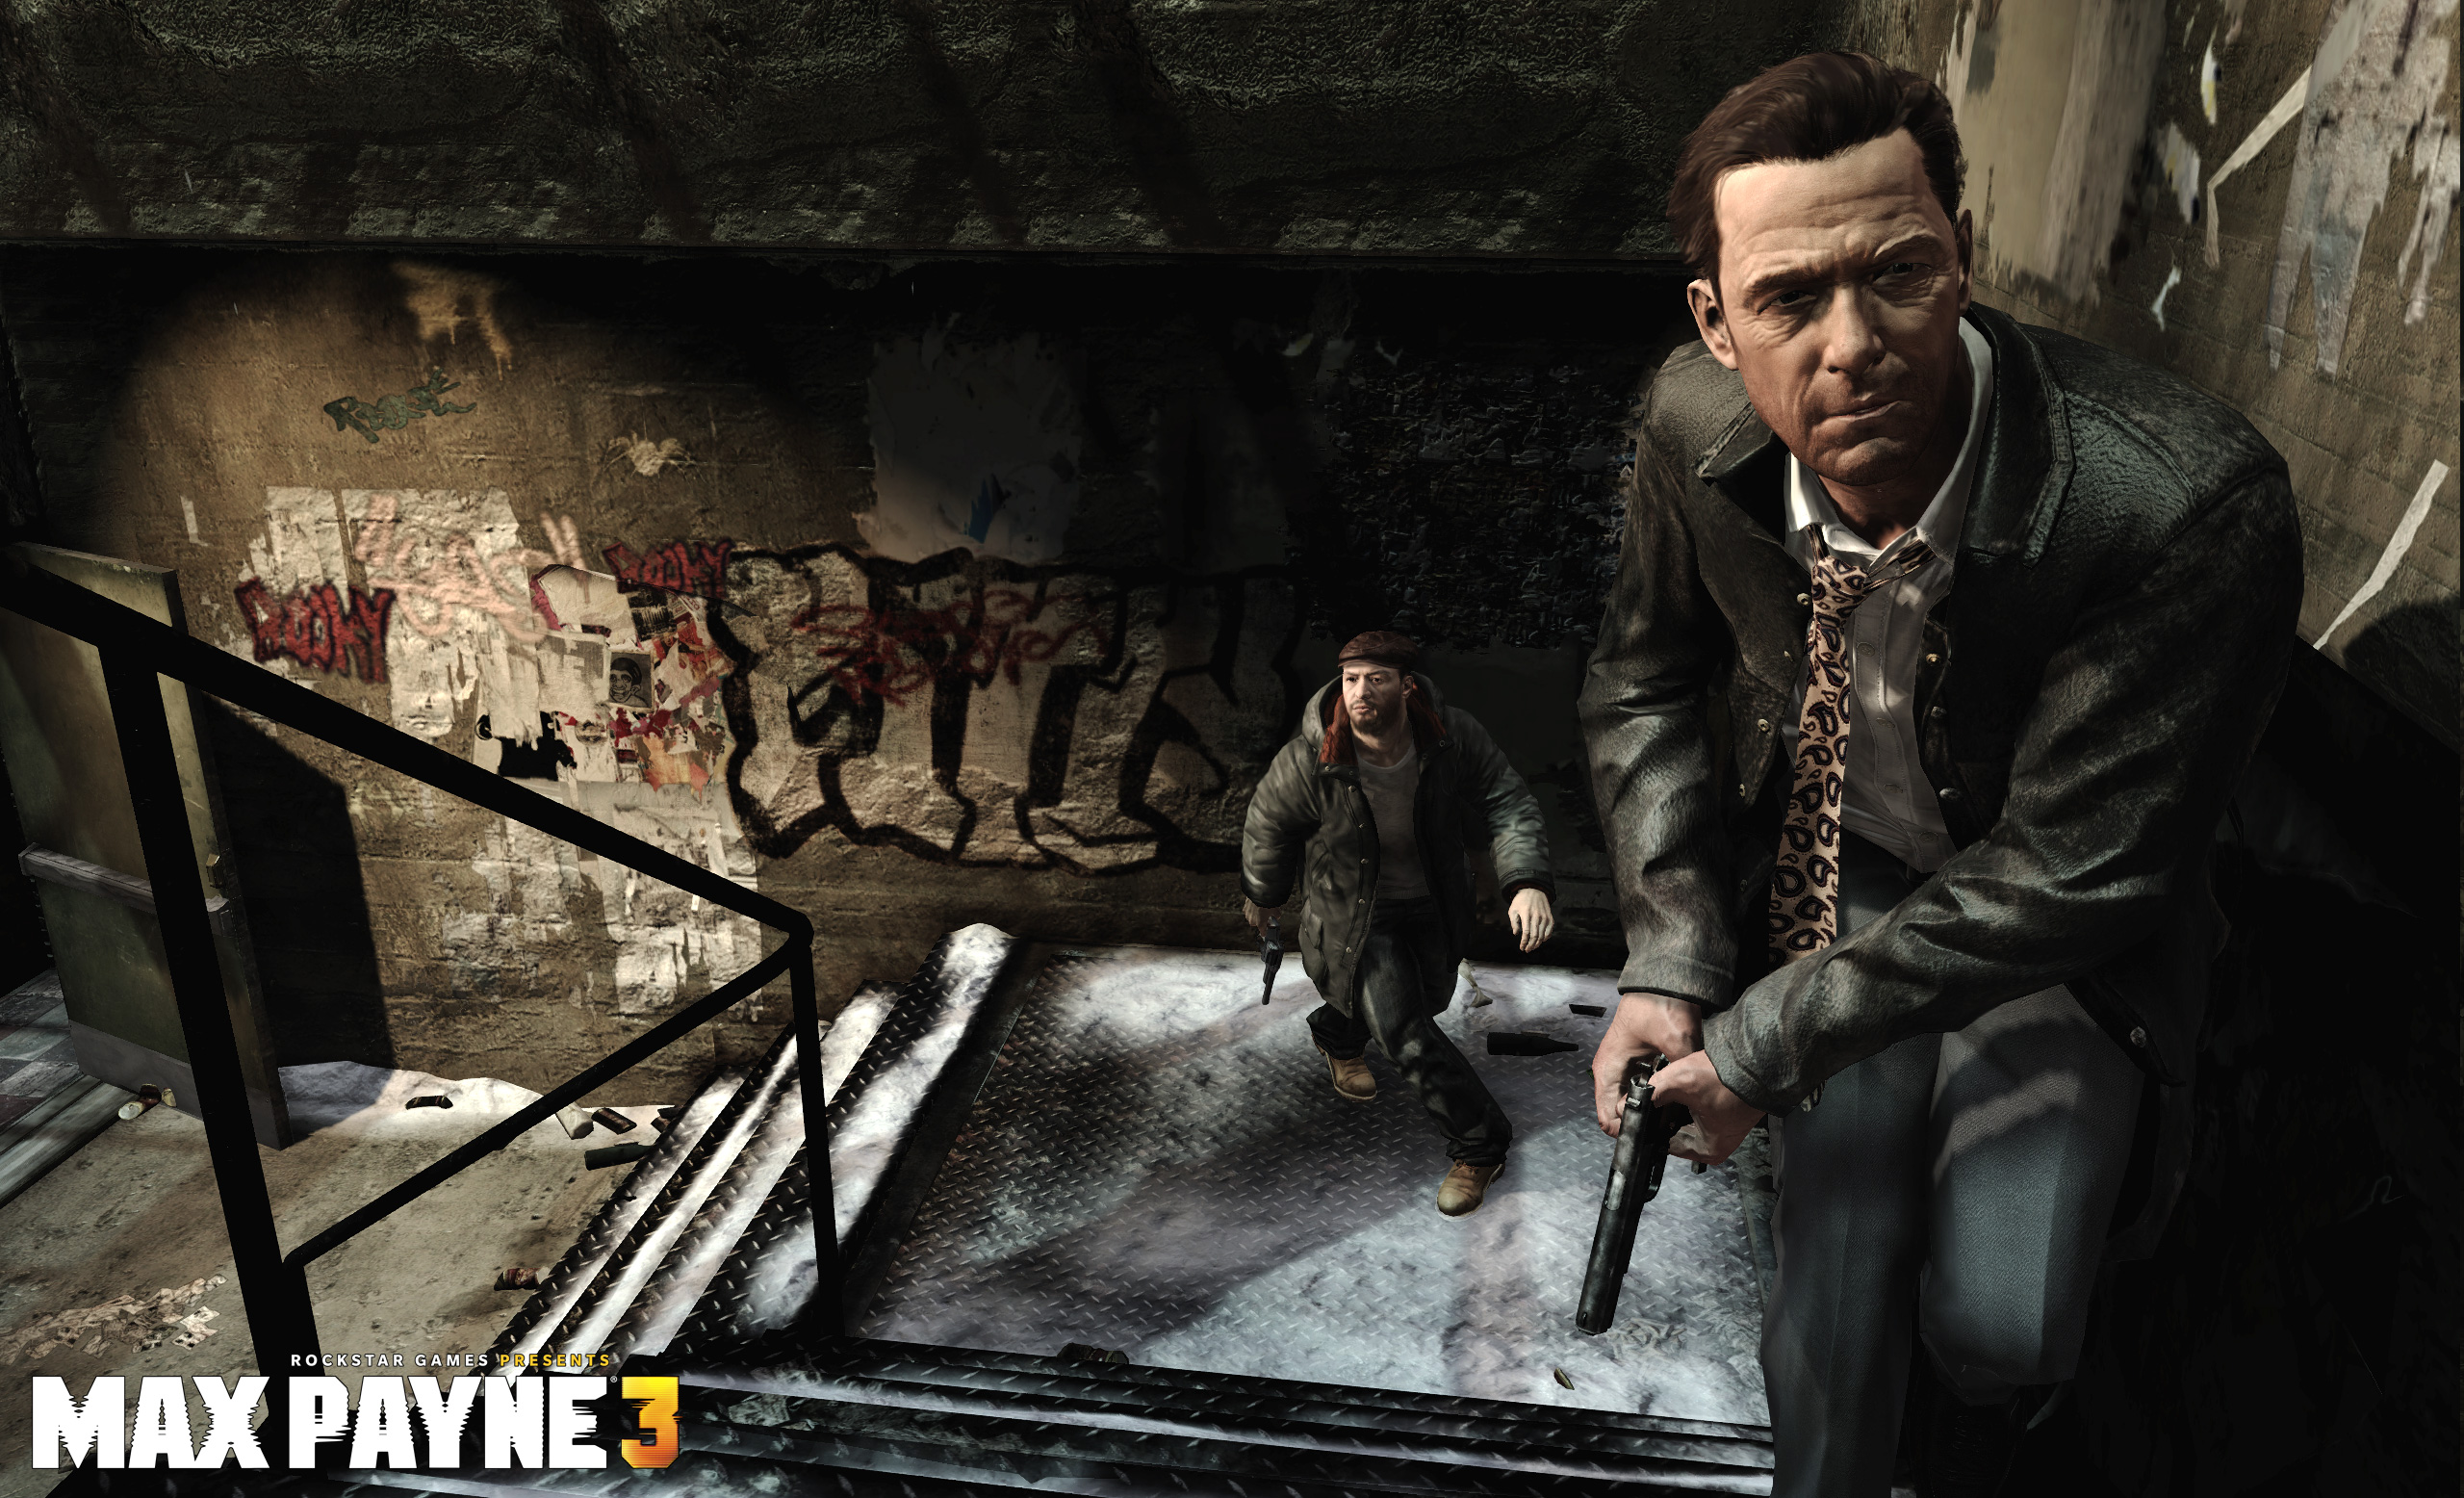 Max Payne 3 For Pc New Screens And Details Including System Specs